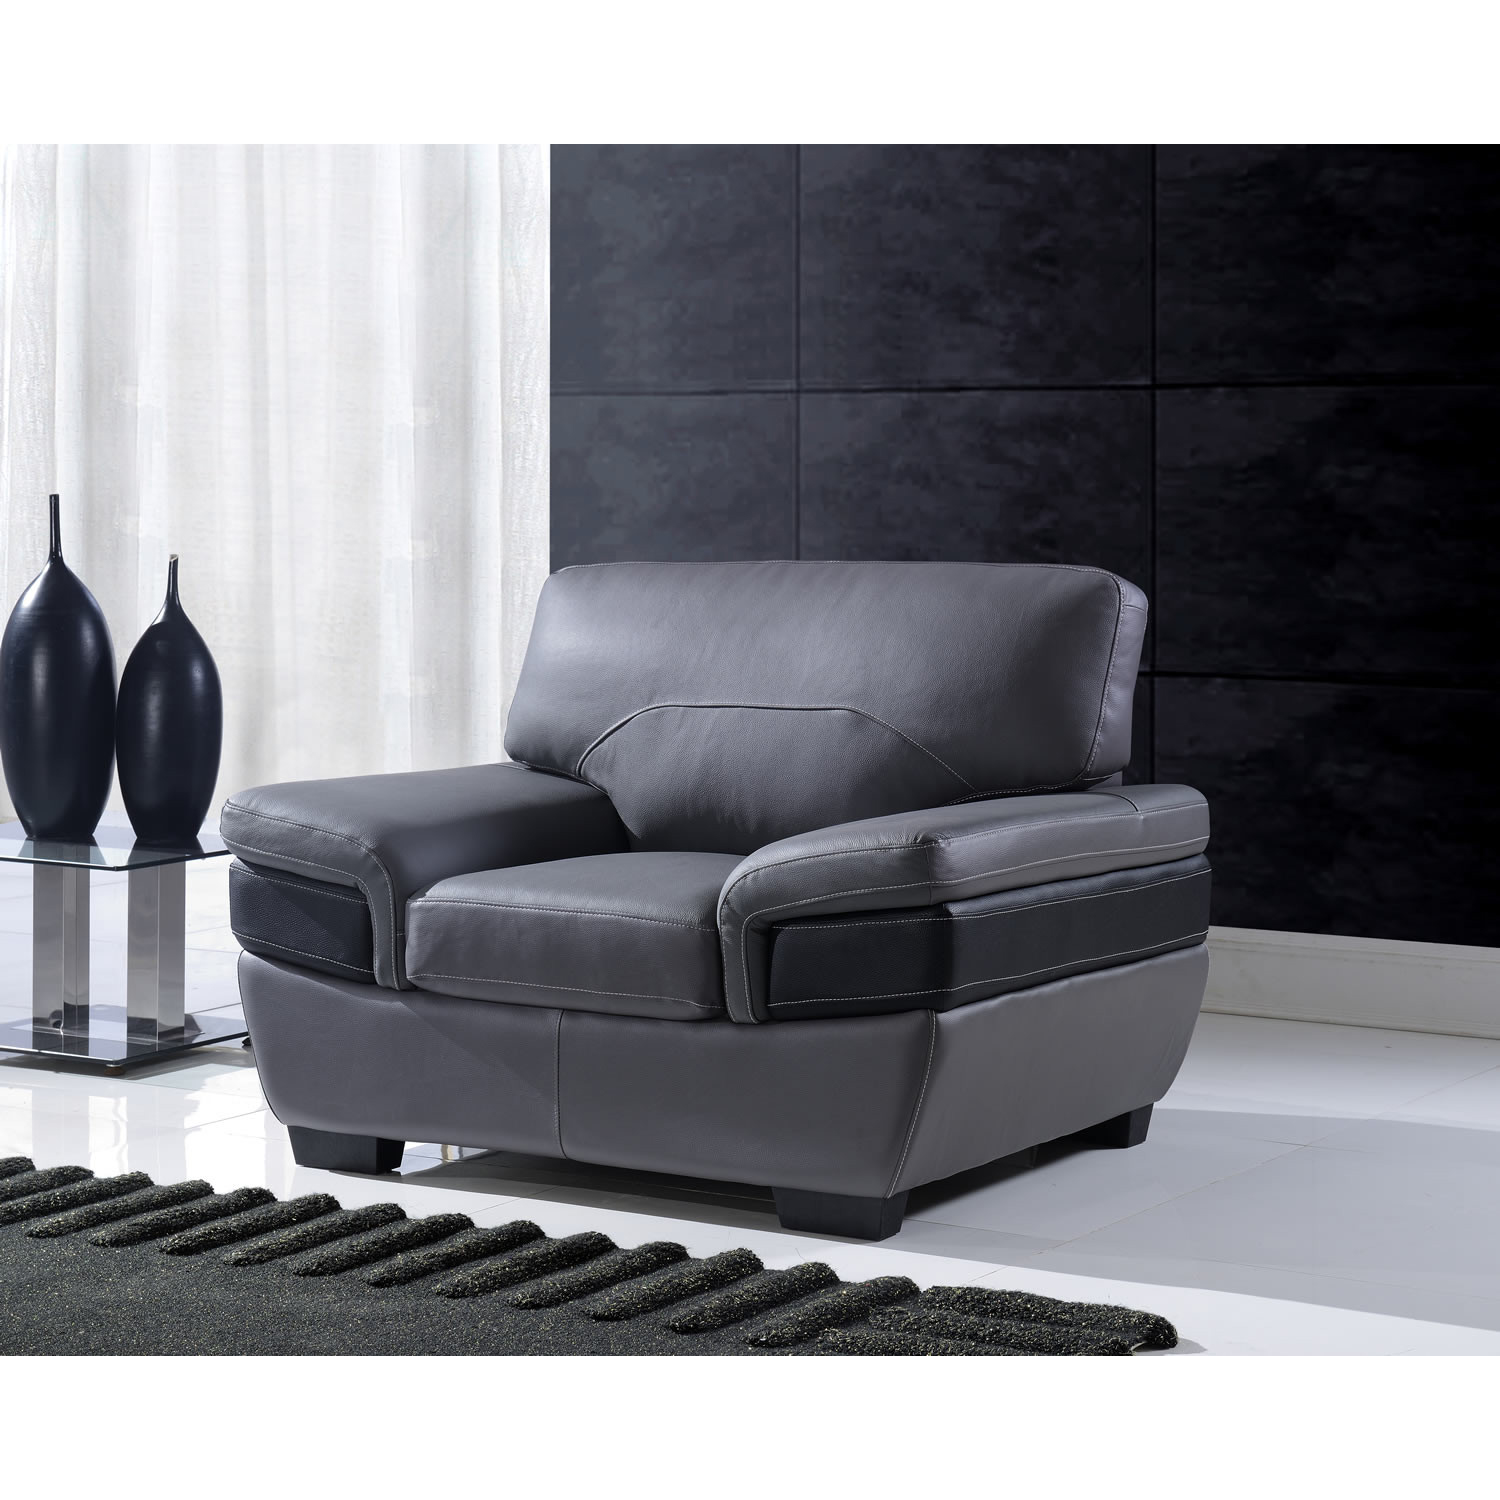 Alicia Leather Chair in Dark Gray/Black